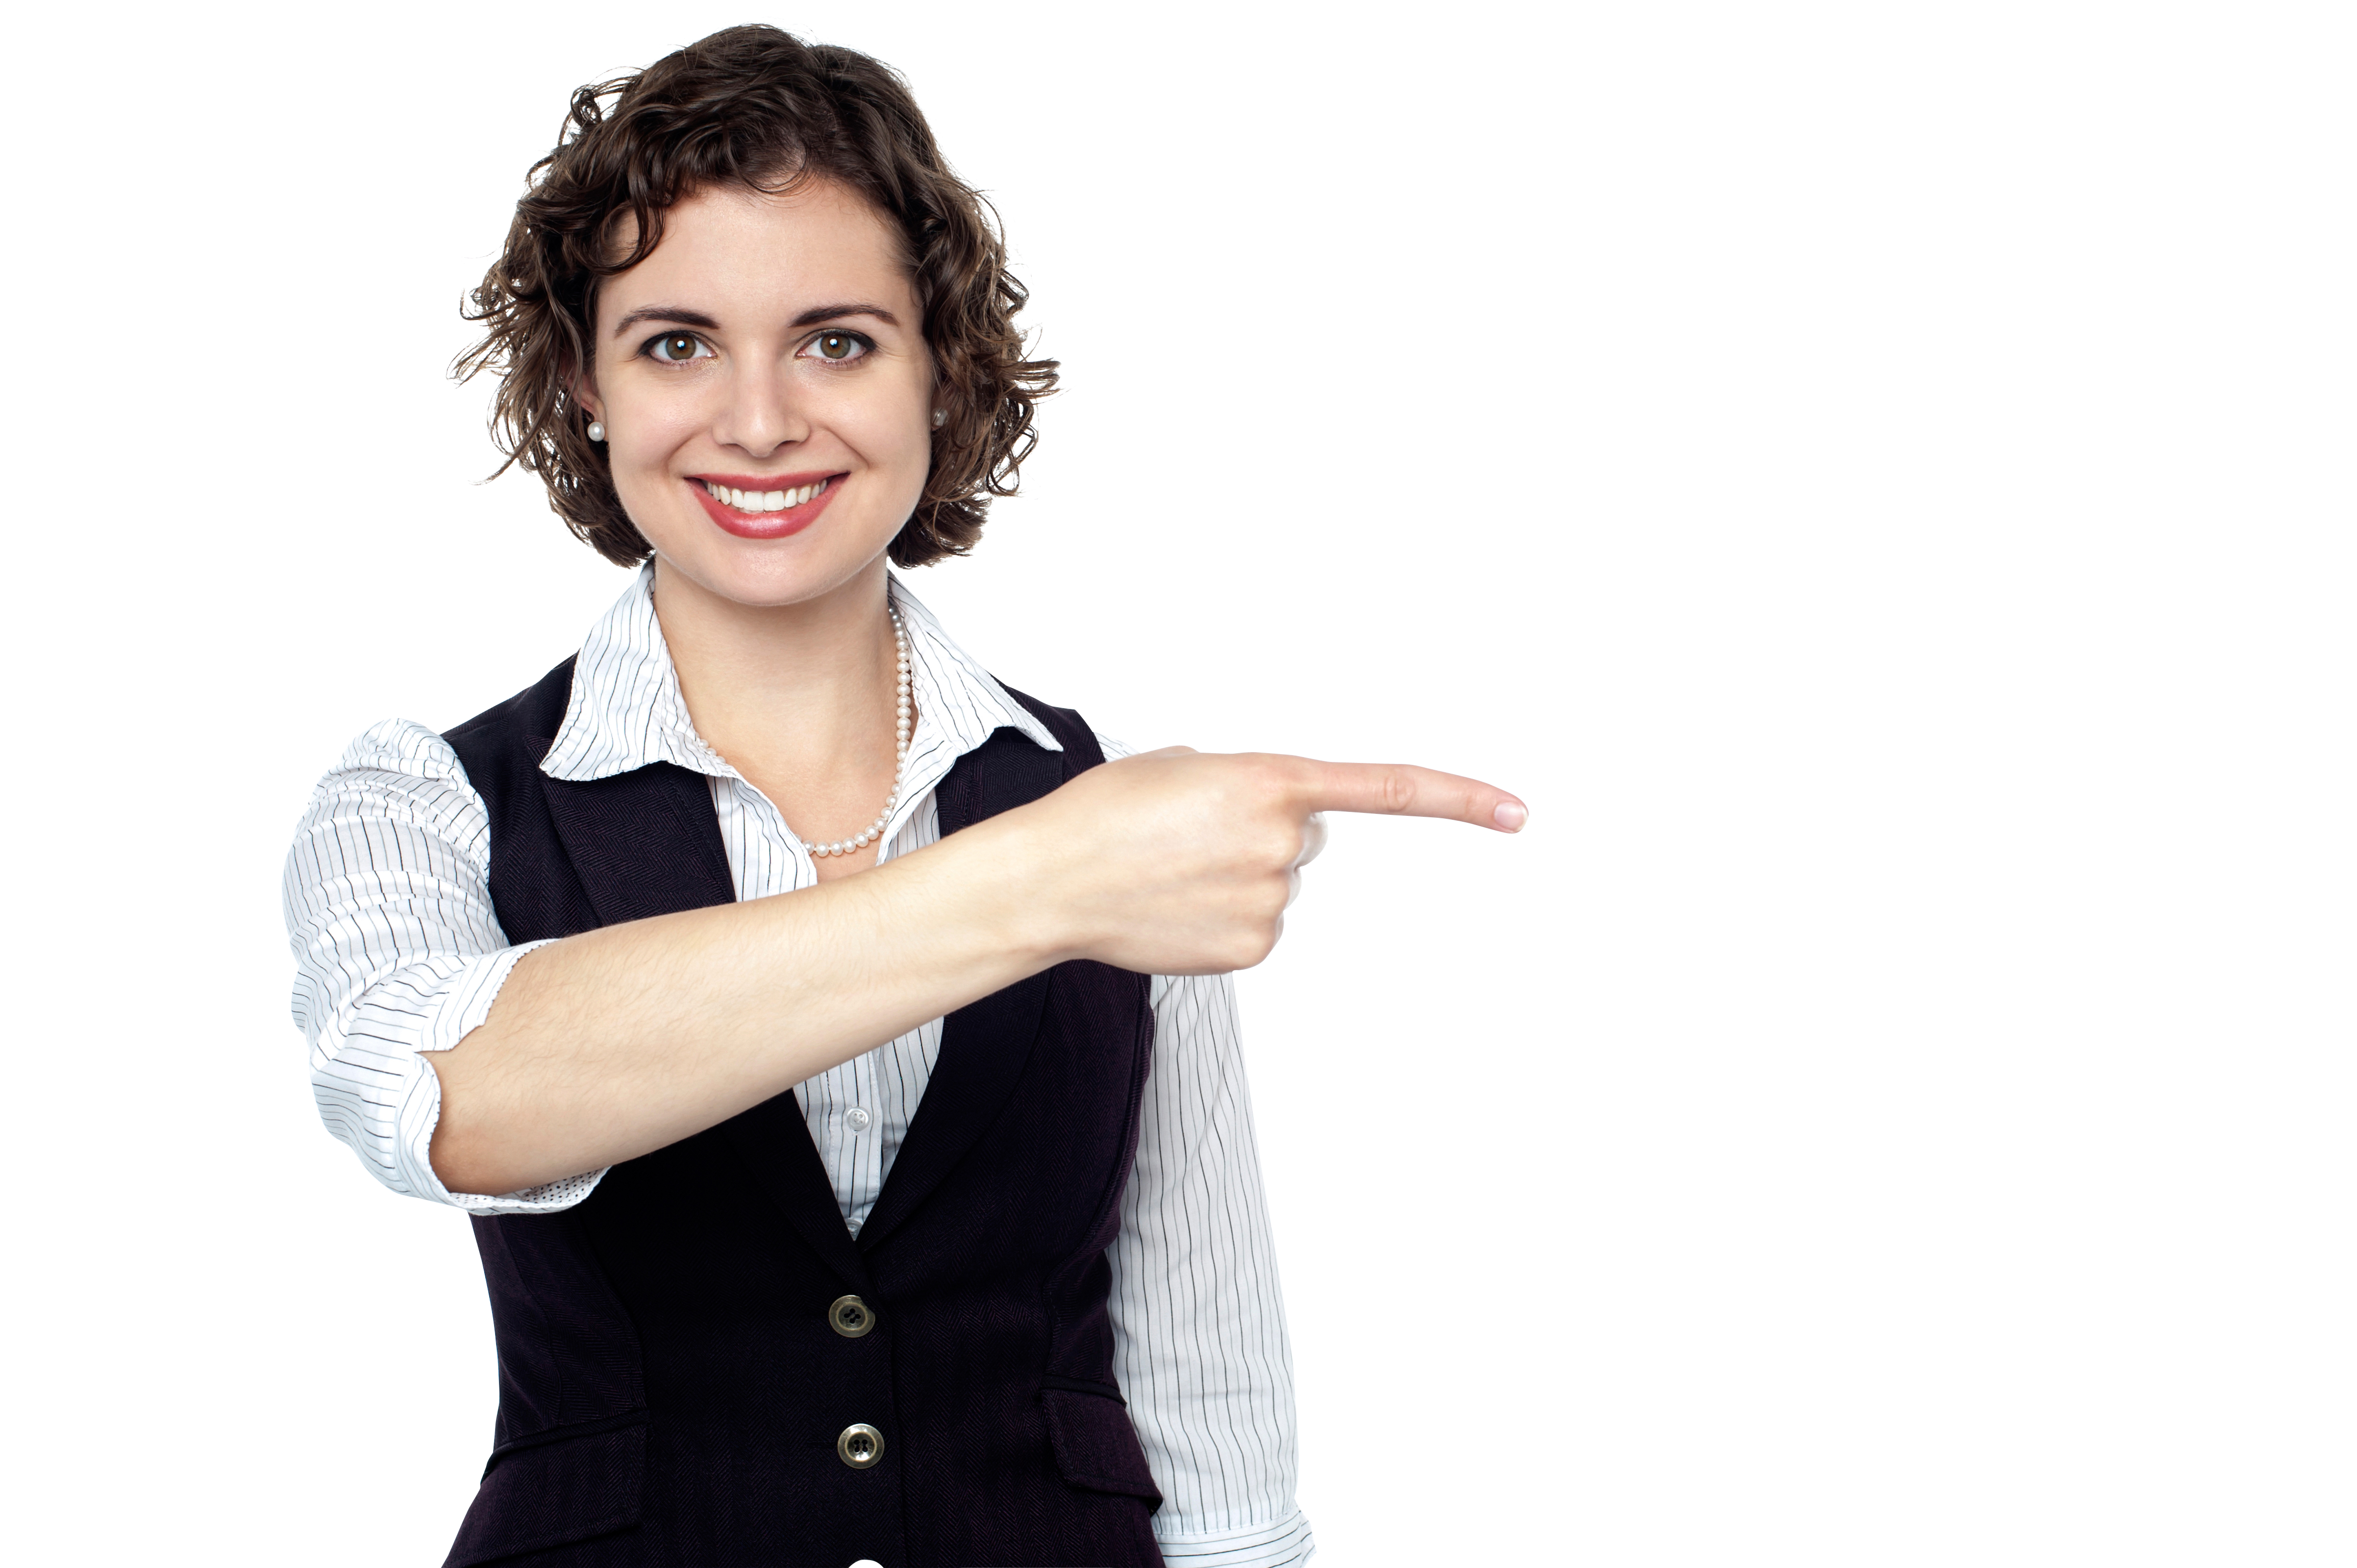 Women png images. Pointing right image purepng